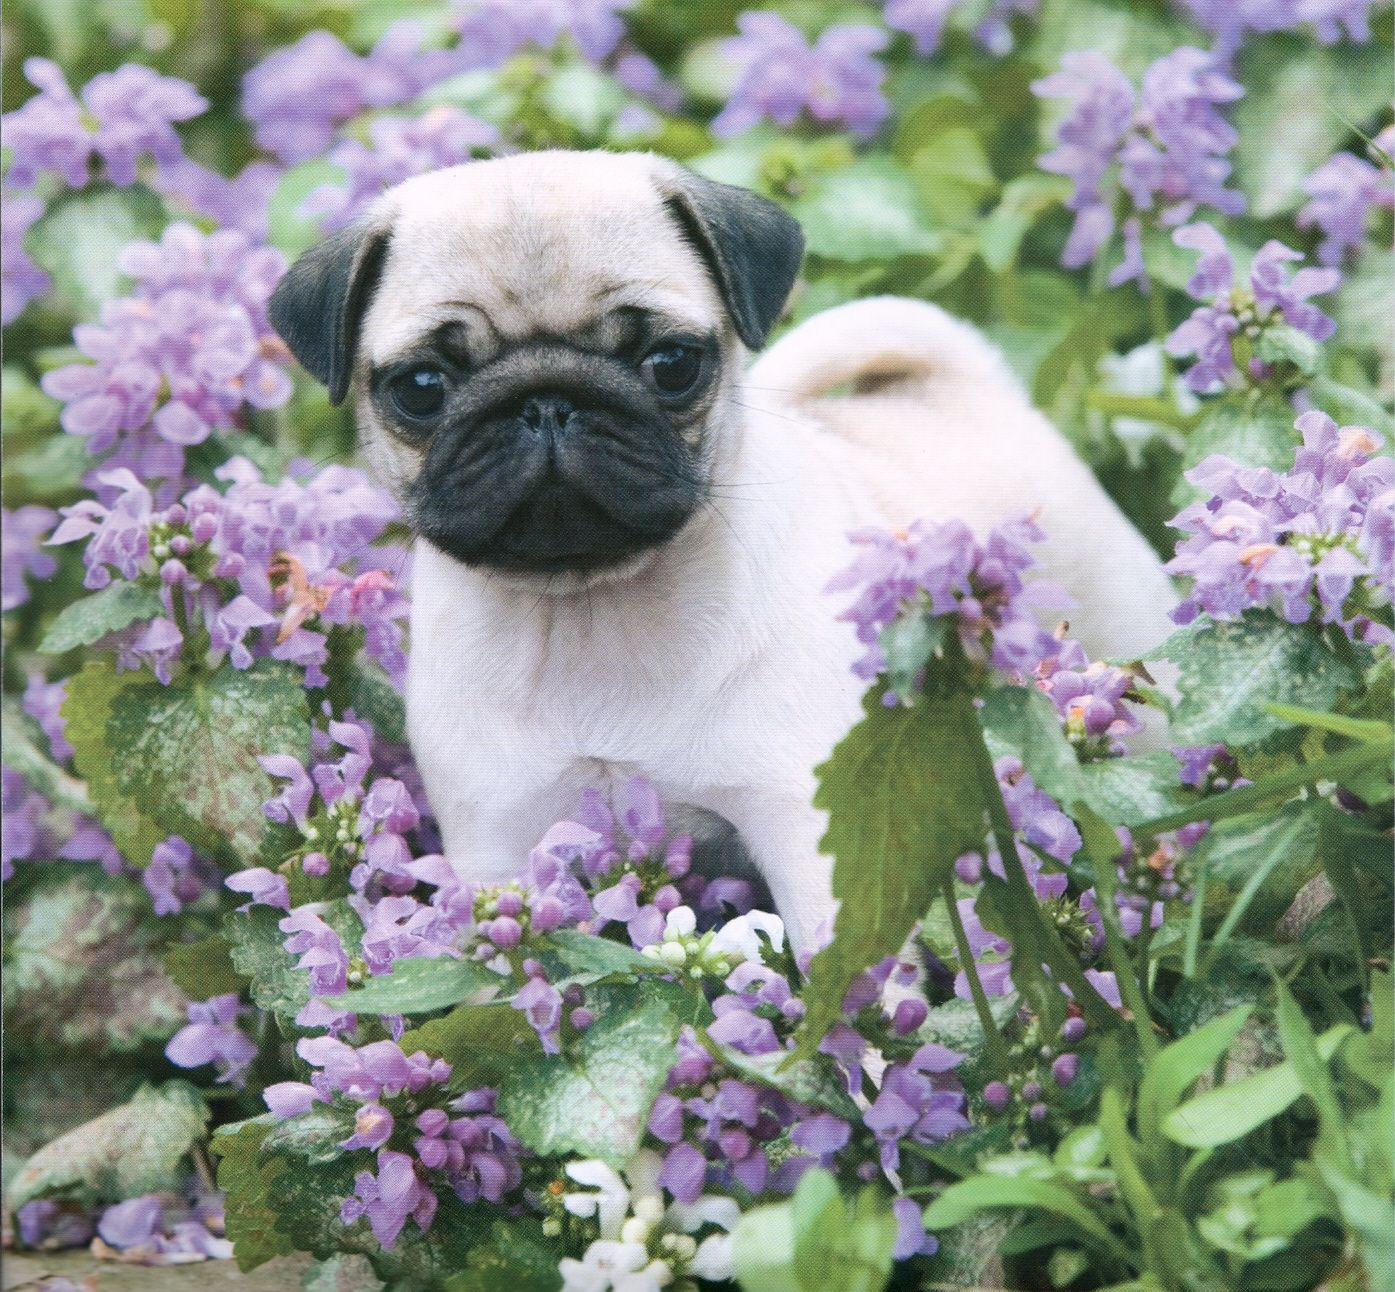 Pug Wallpaper Screensaver Background Pug Puppy Baby Pugs